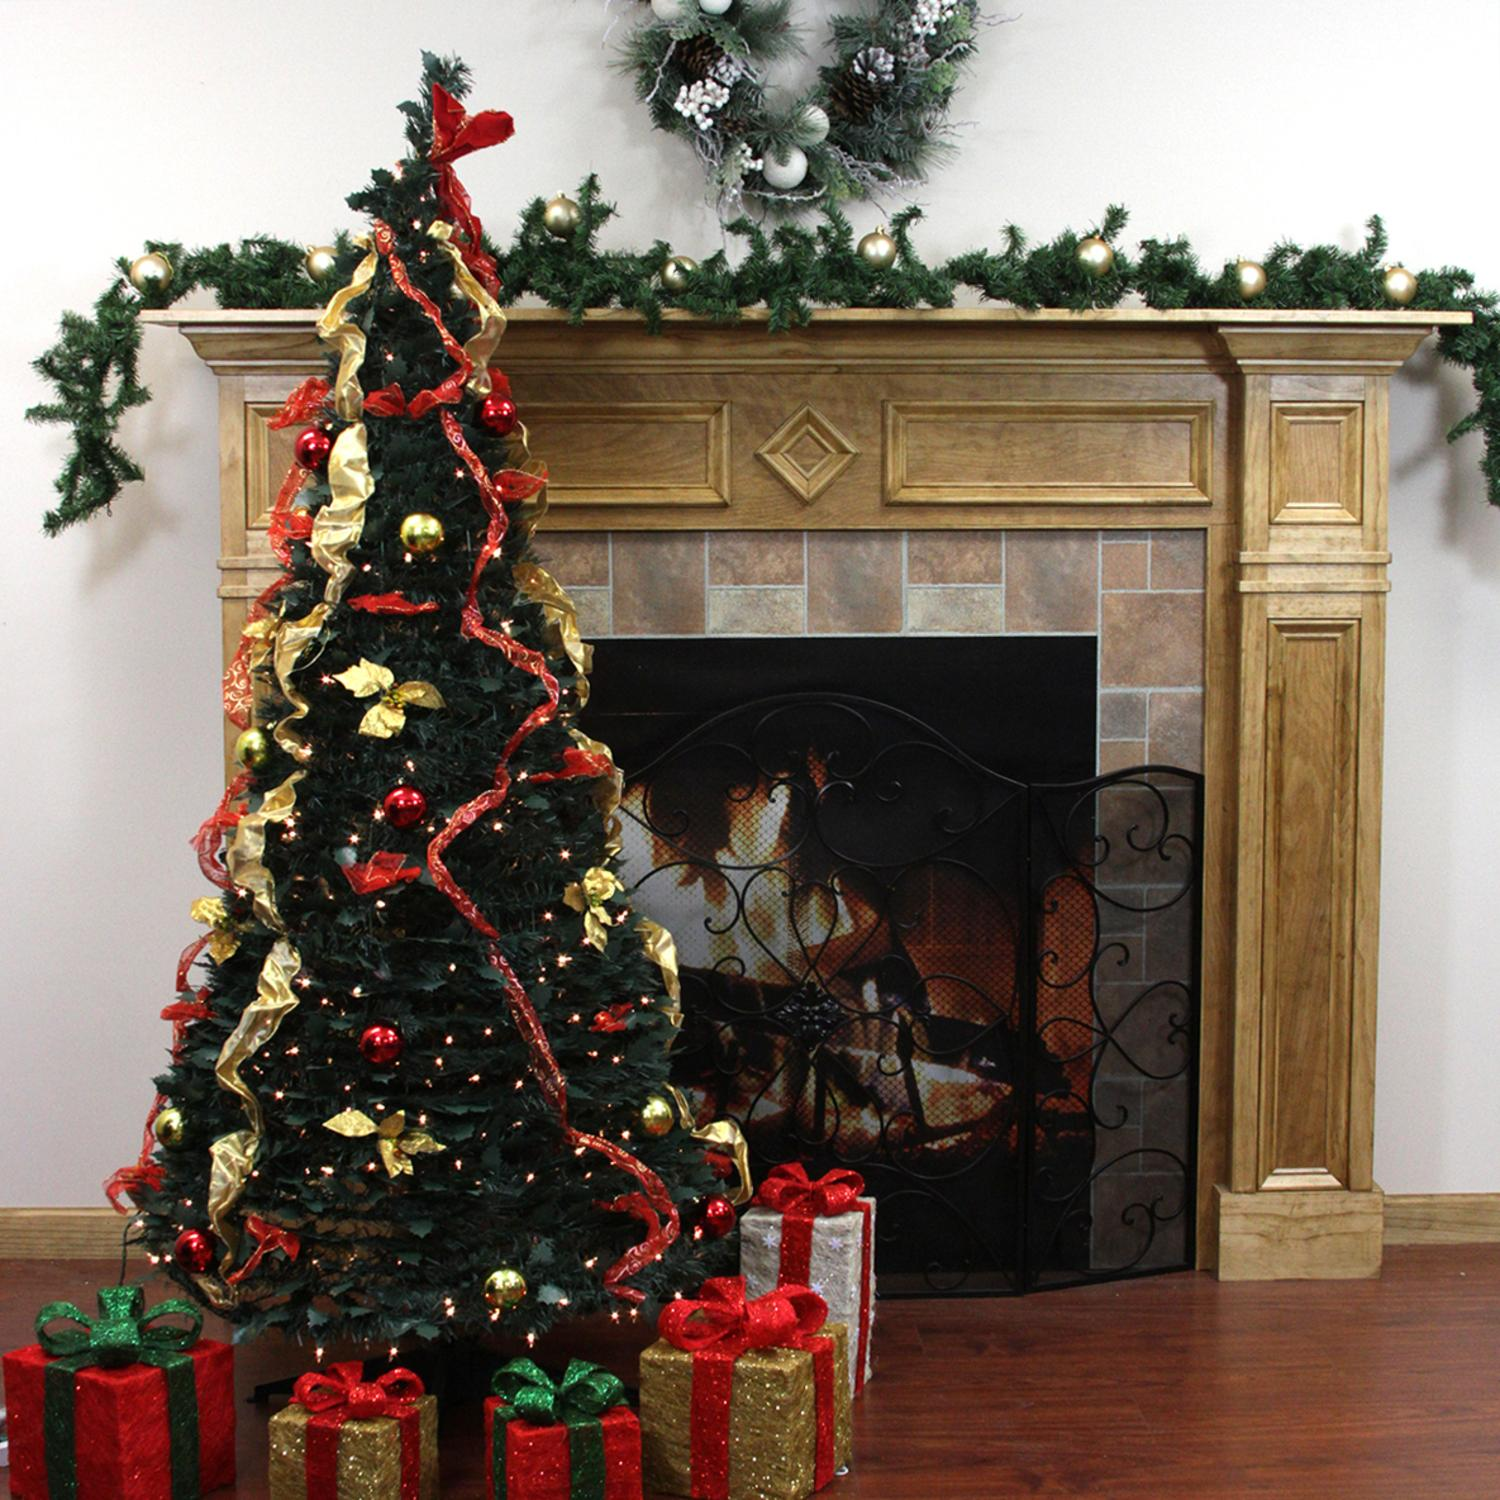 Pop Up Christmas Trees With Lights: 6' Pre-Lit Pop Up Decorated Red/Gold Artificial Christmas